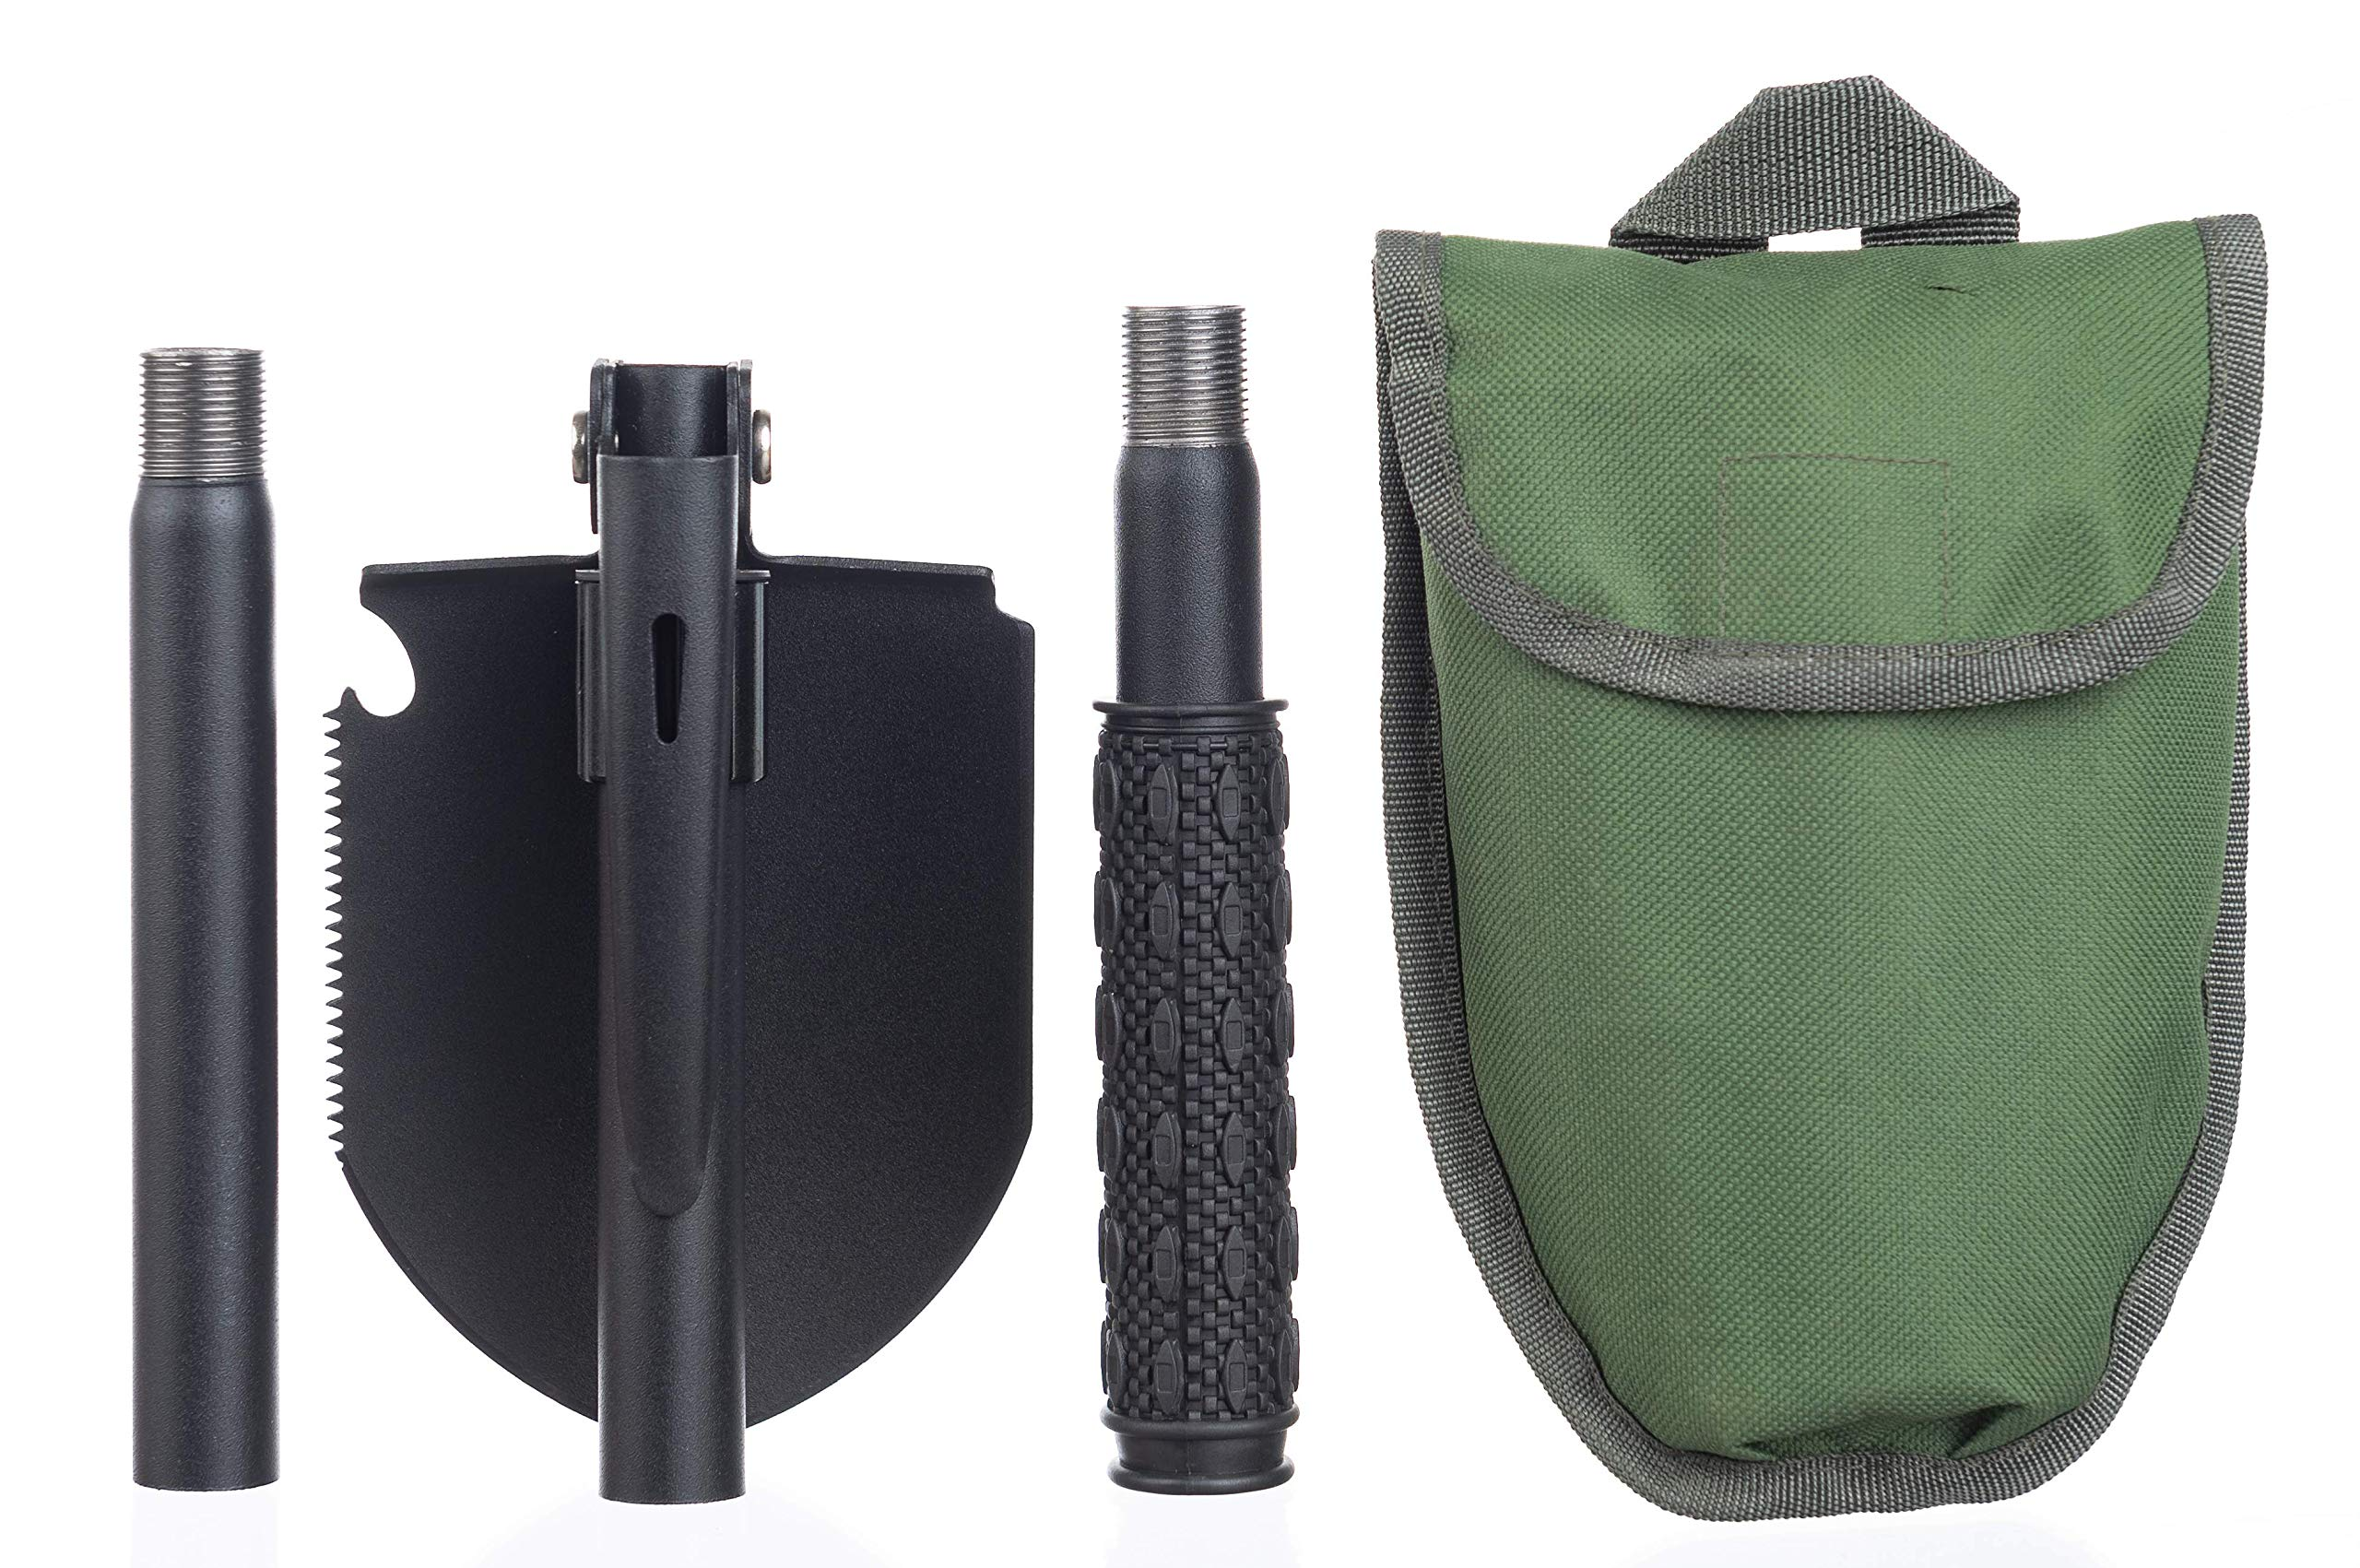 Survival Gear Products Collapsible Shovel and Multi Tool. Lightweight, Compact, and Durable. Perfect for the Car, Backpacking Adventure, Family Camping Trip, or Your Emergency Preparedness Kit. by     Survival Gear Products                                                                                                                                                                                                                                      (Image #4)